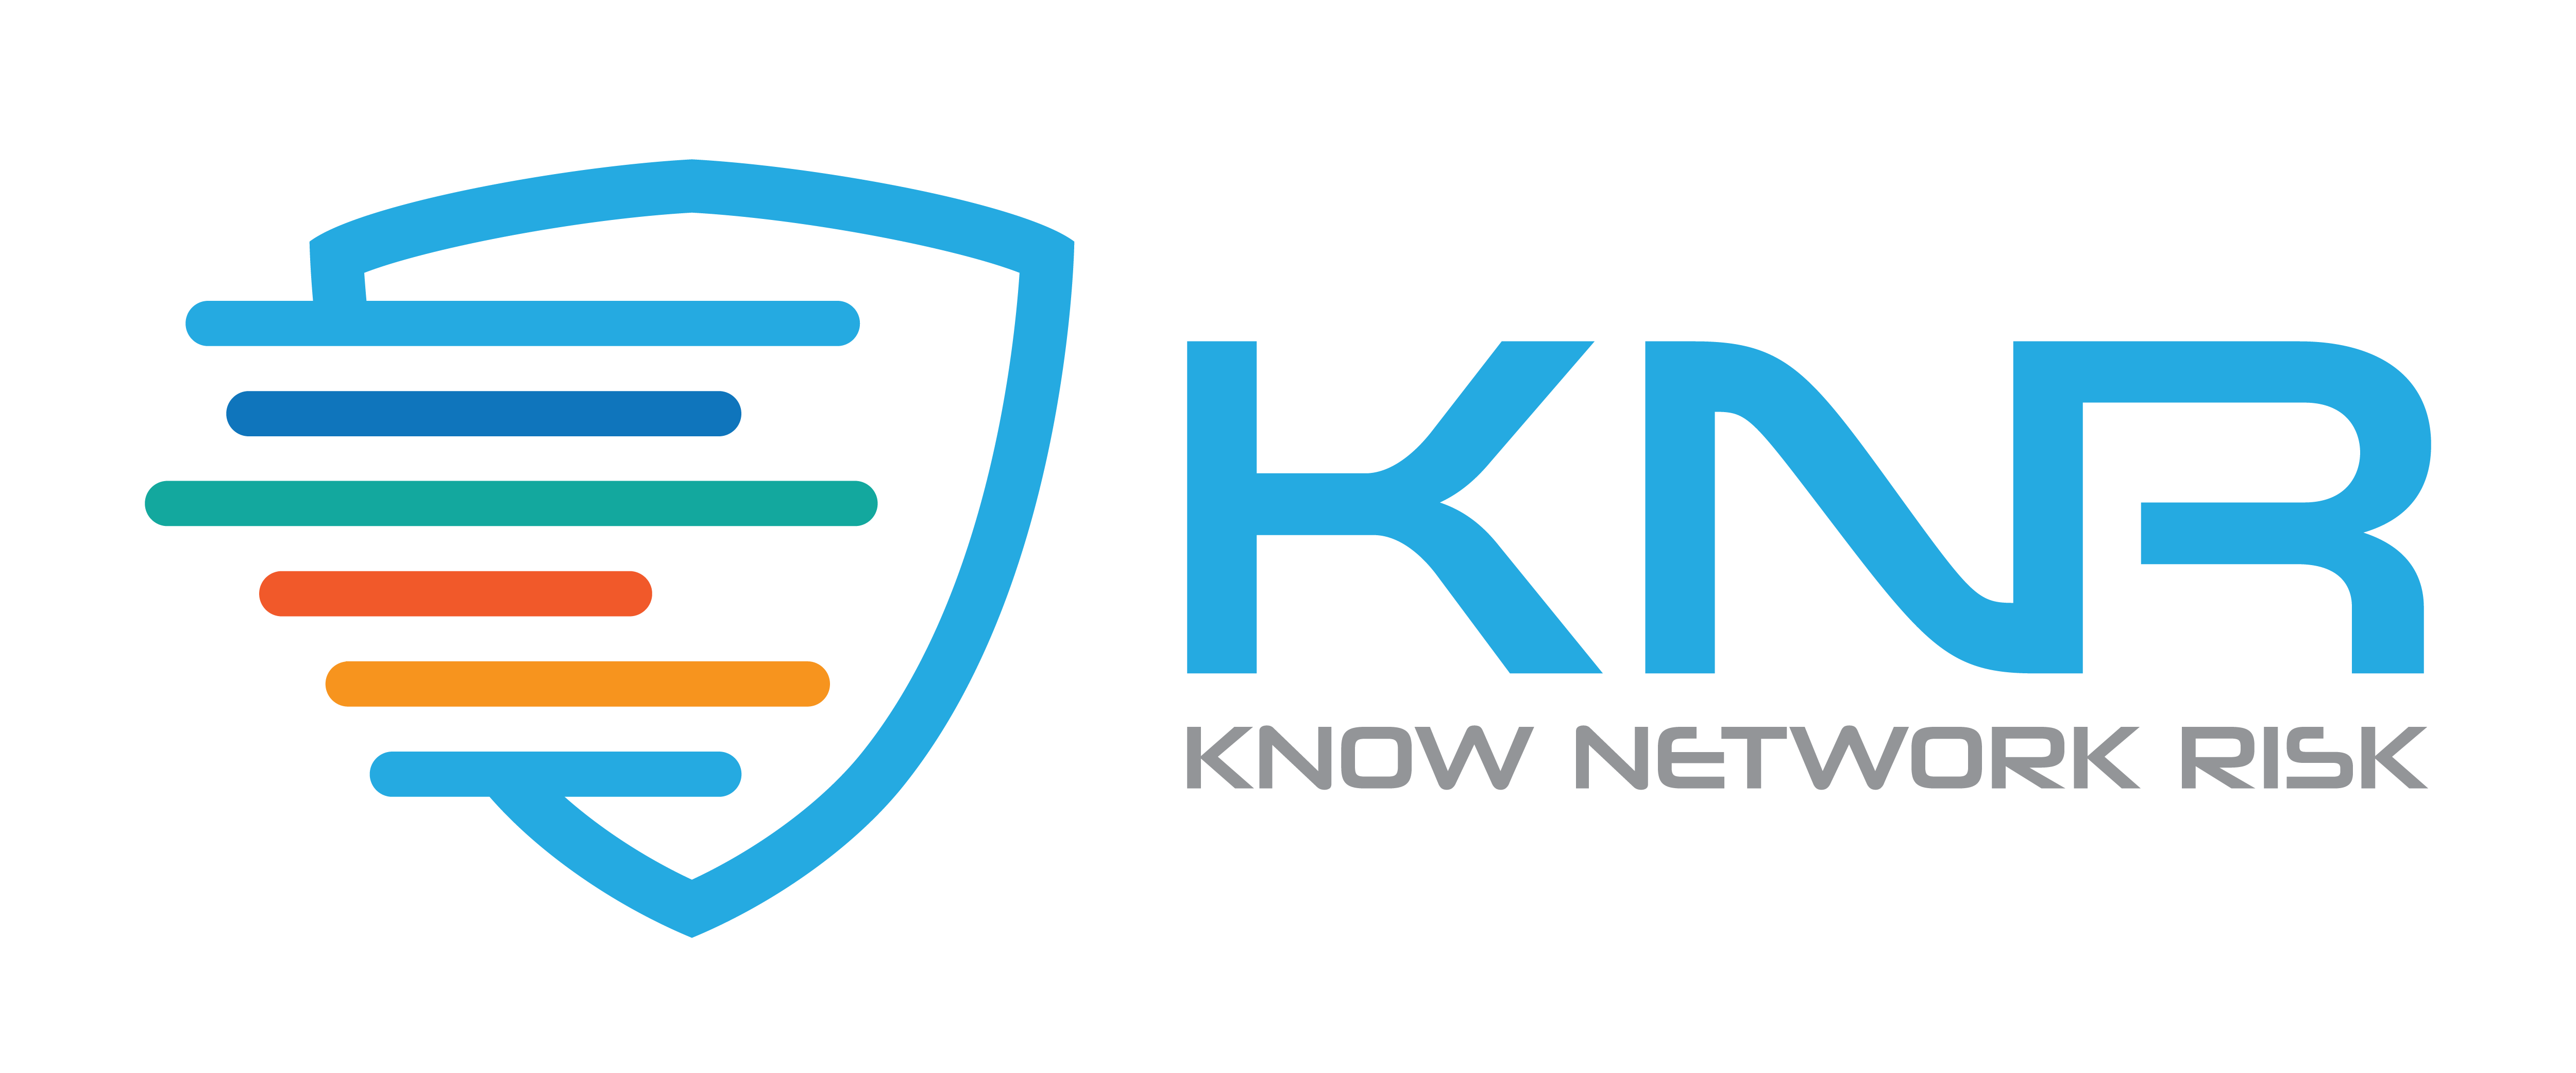 knownetworkrisk